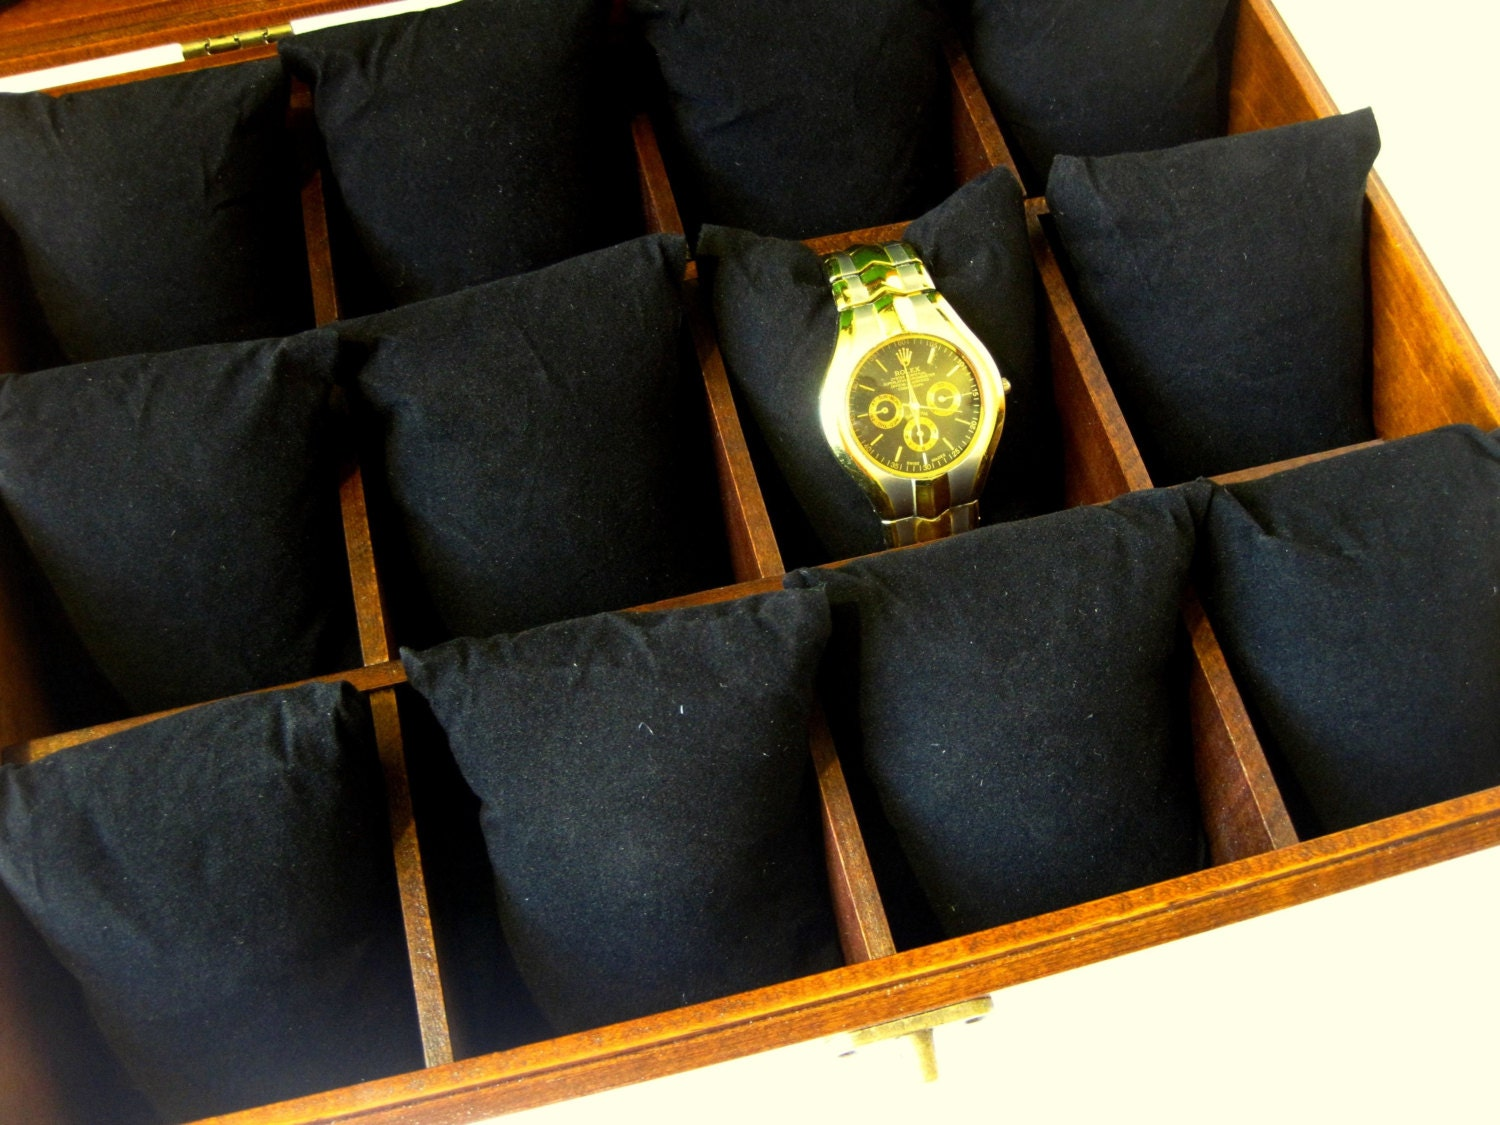 Watch Pillows Bracelet Pillows For Watch Boxes Or Jewelry